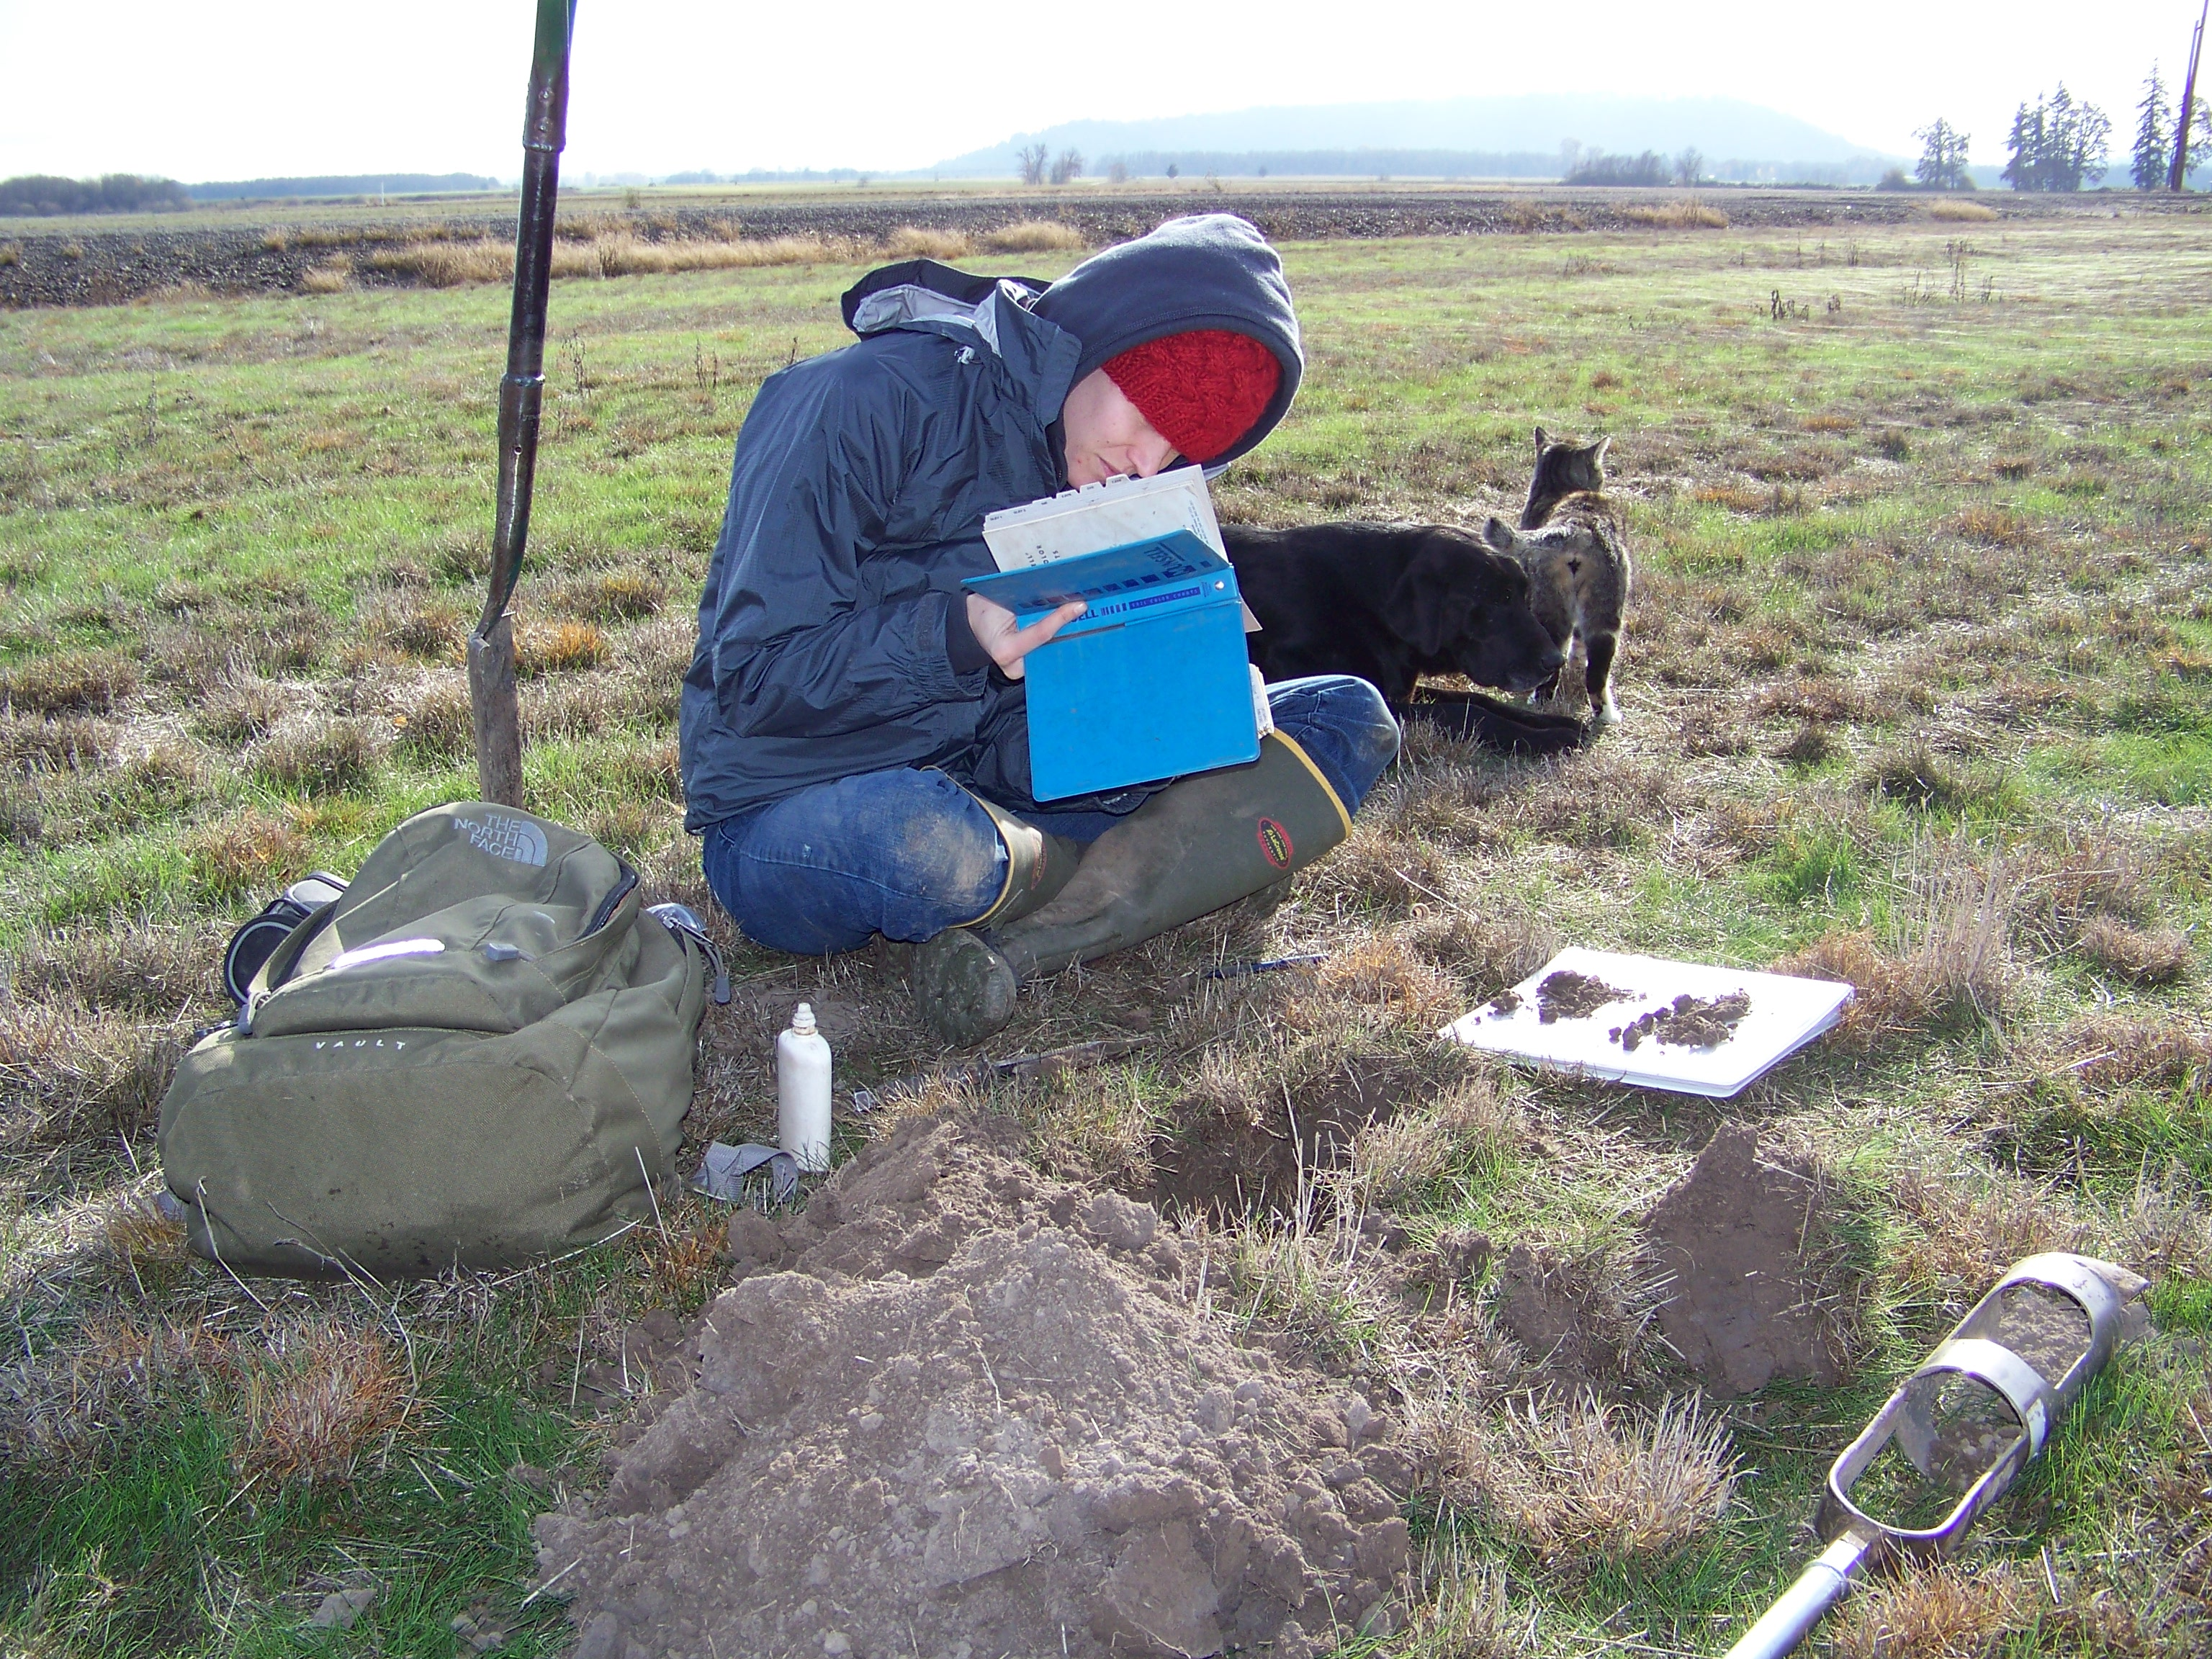 Soil scientist studies soil in field